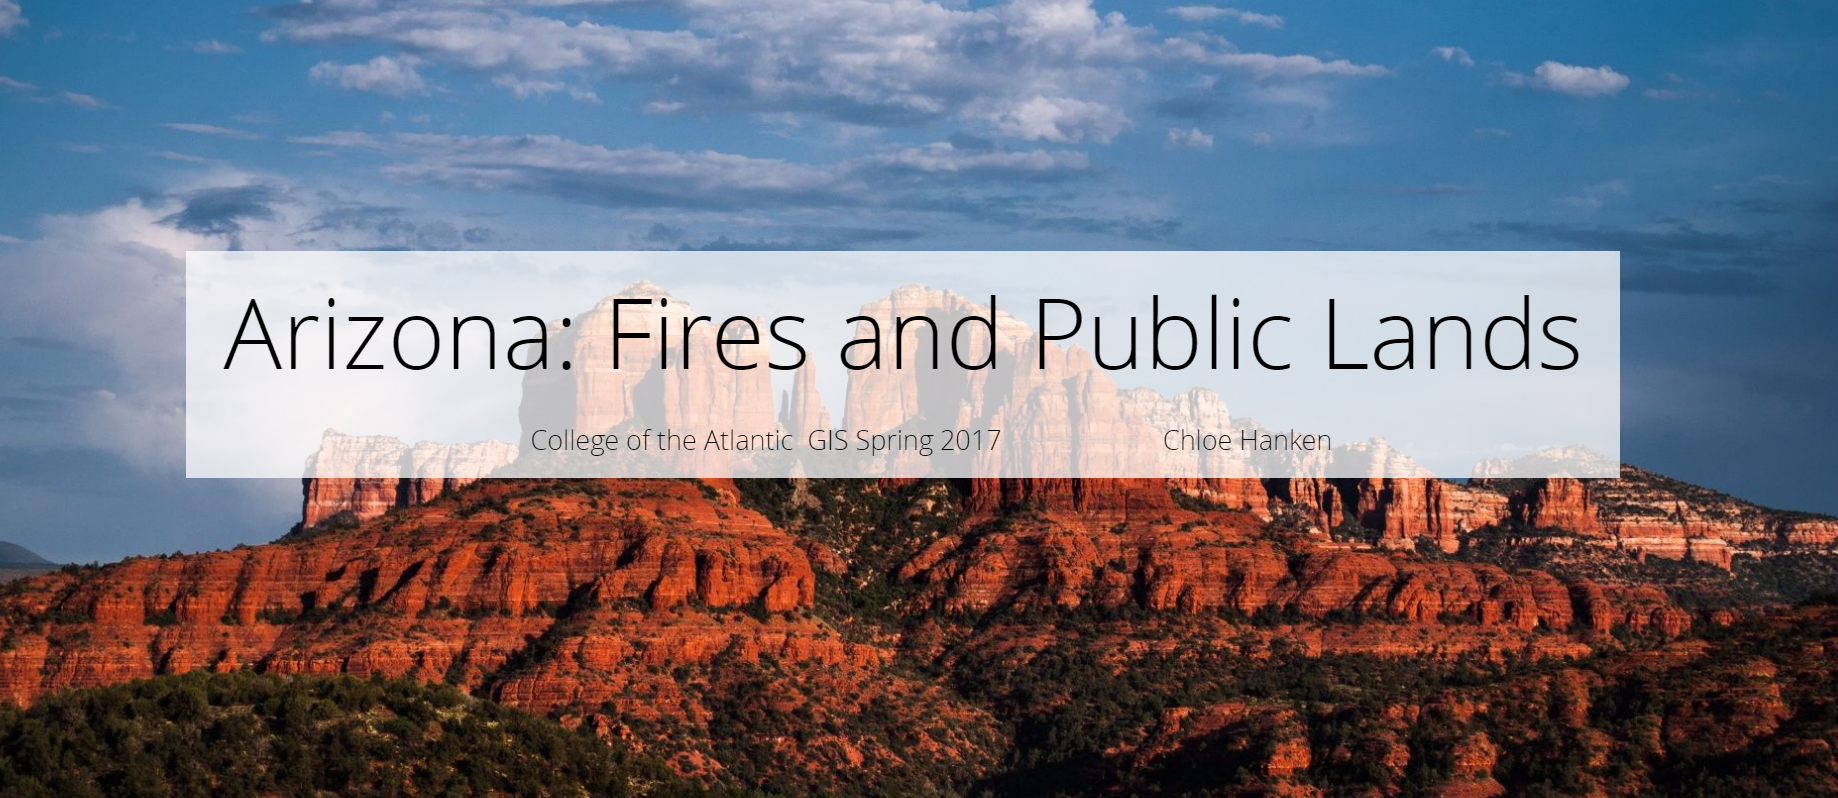 Arizona: Fires and Public Lands